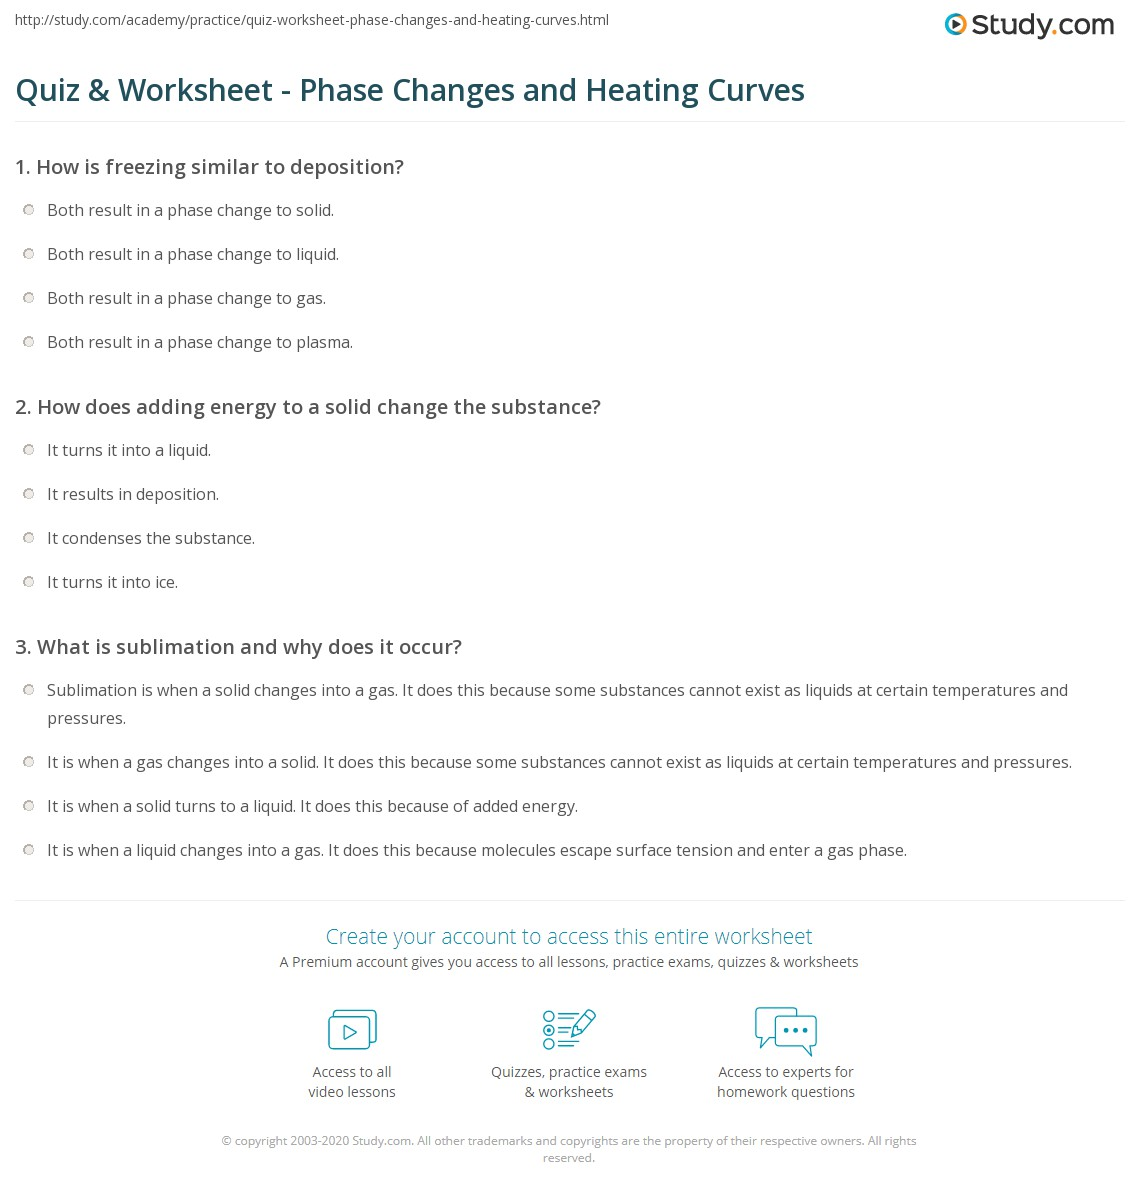 Worksheets Heating Curve Worksheet Answers quiz worksheet phase changes and heating curves study com print worksheet